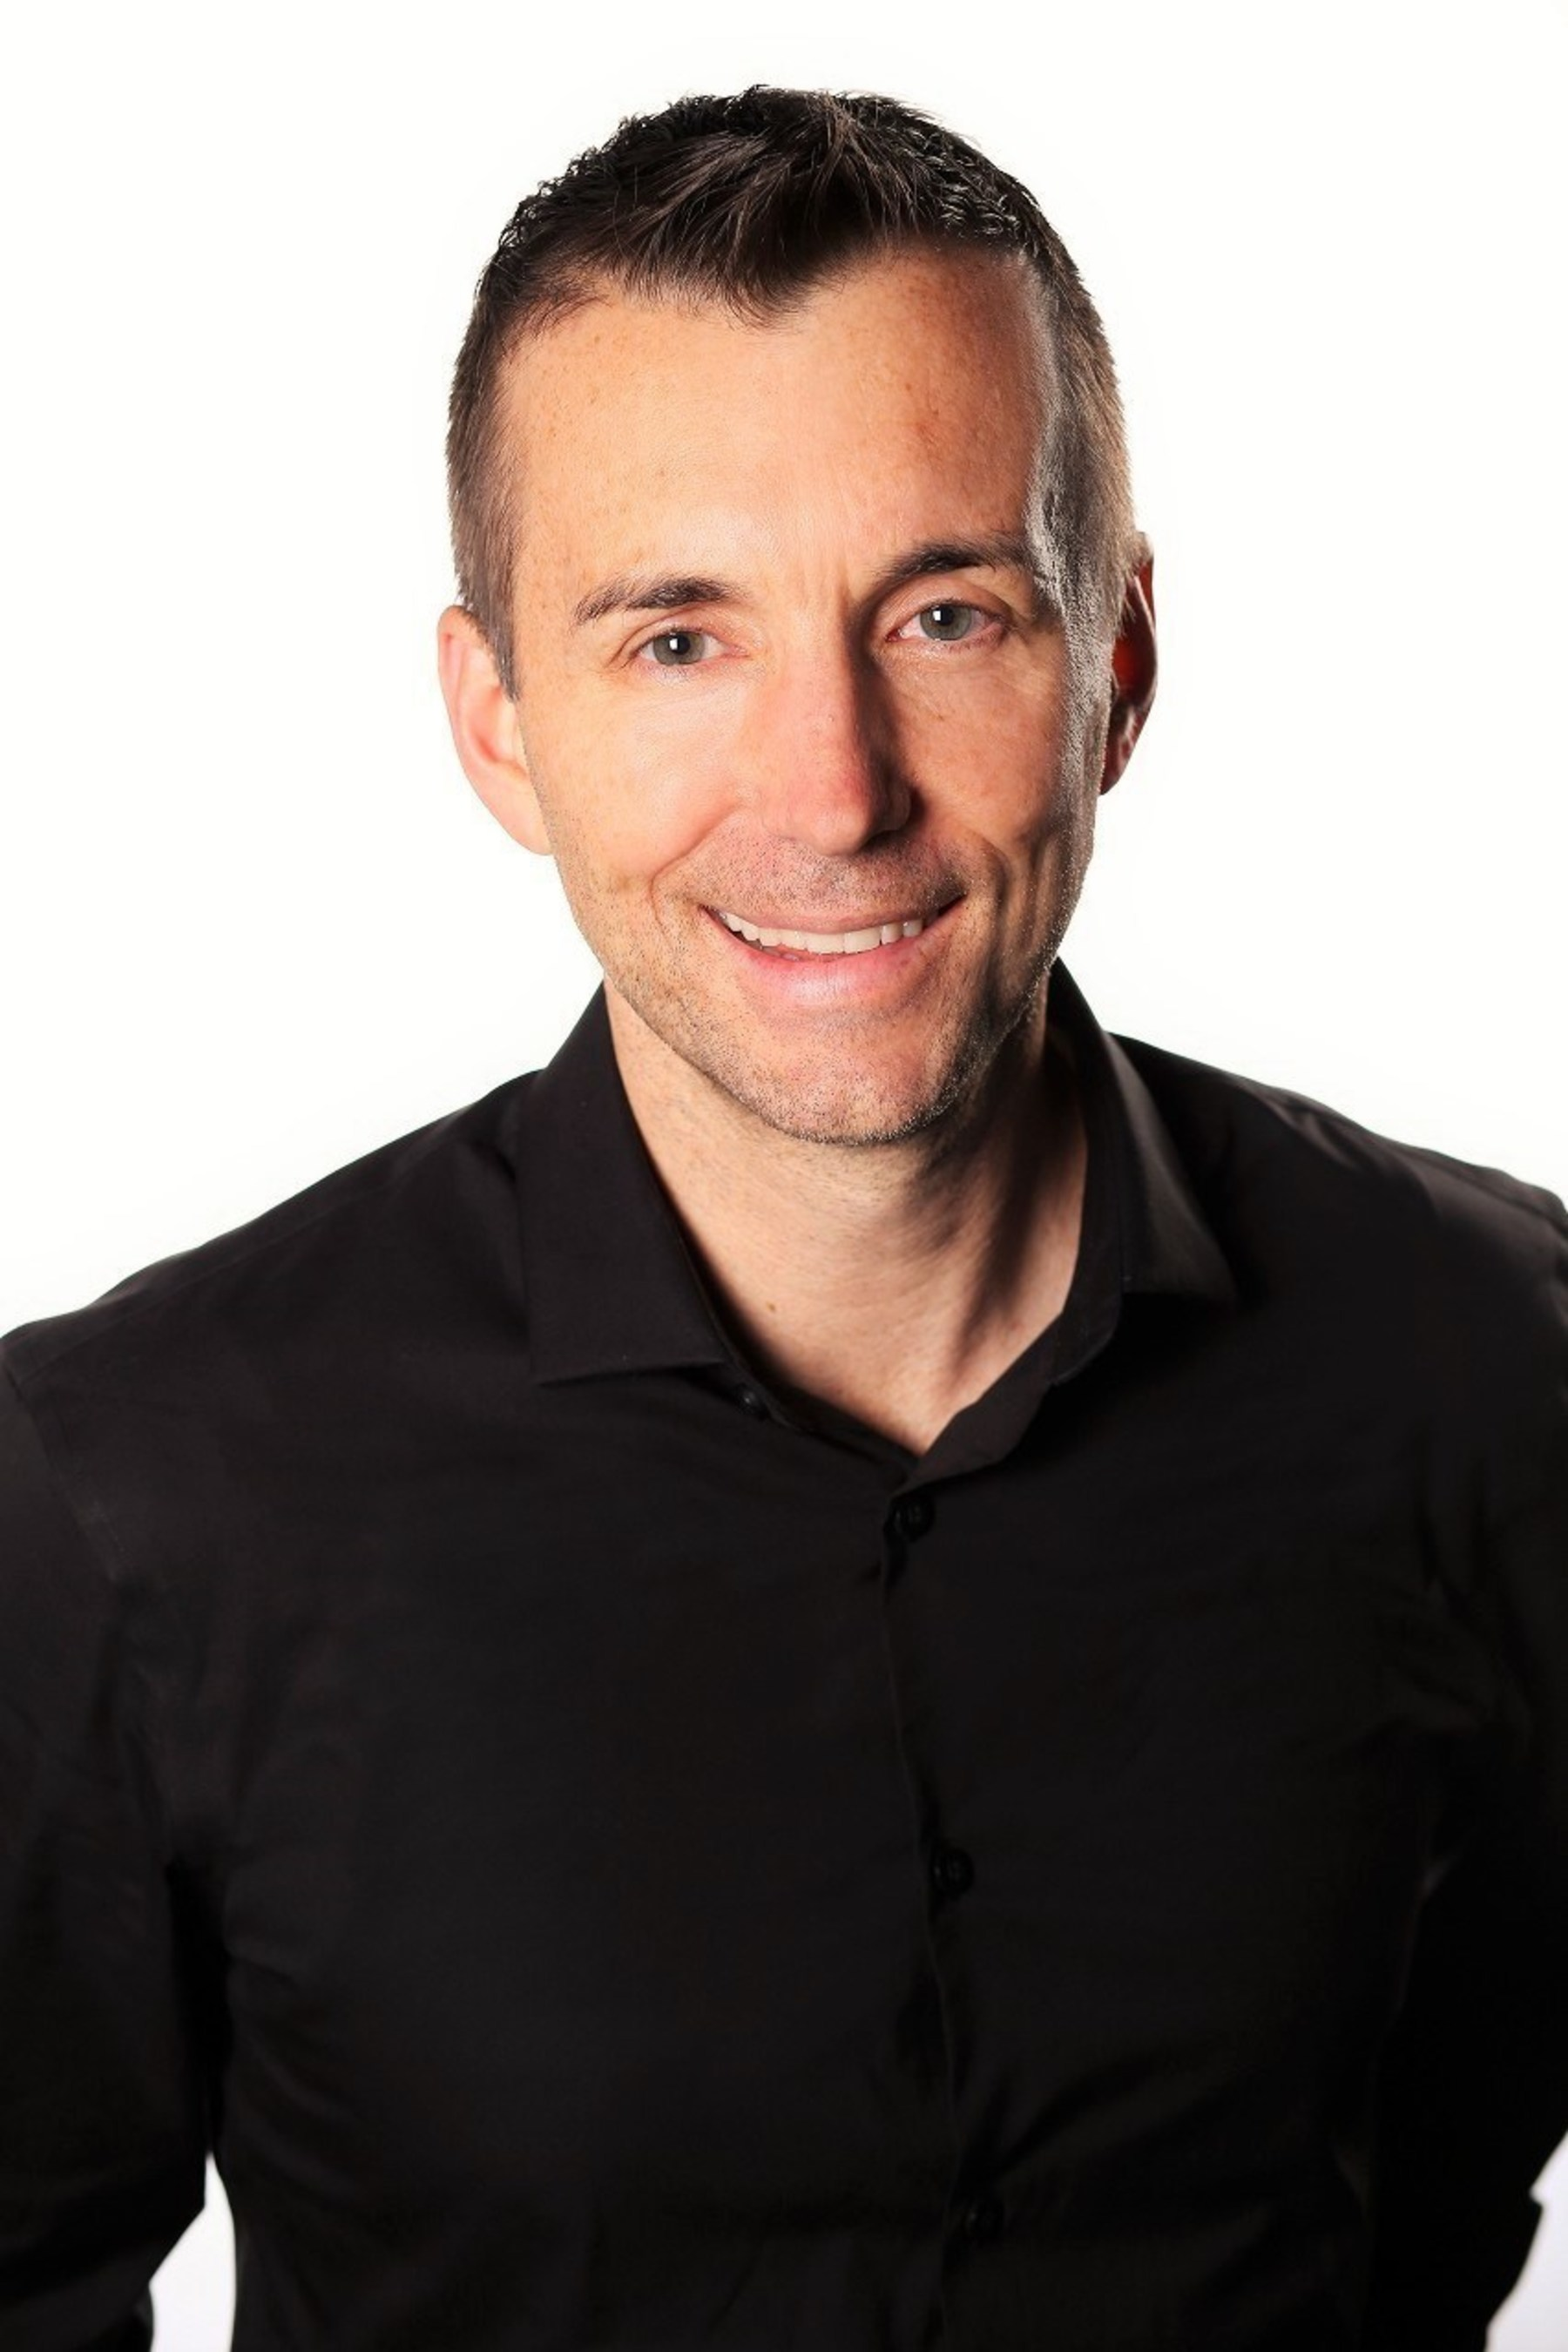 Qualtrics Adds Microsoft Executive as COO to Continue Exponential Growth and Global Expansion Ahead of IPO